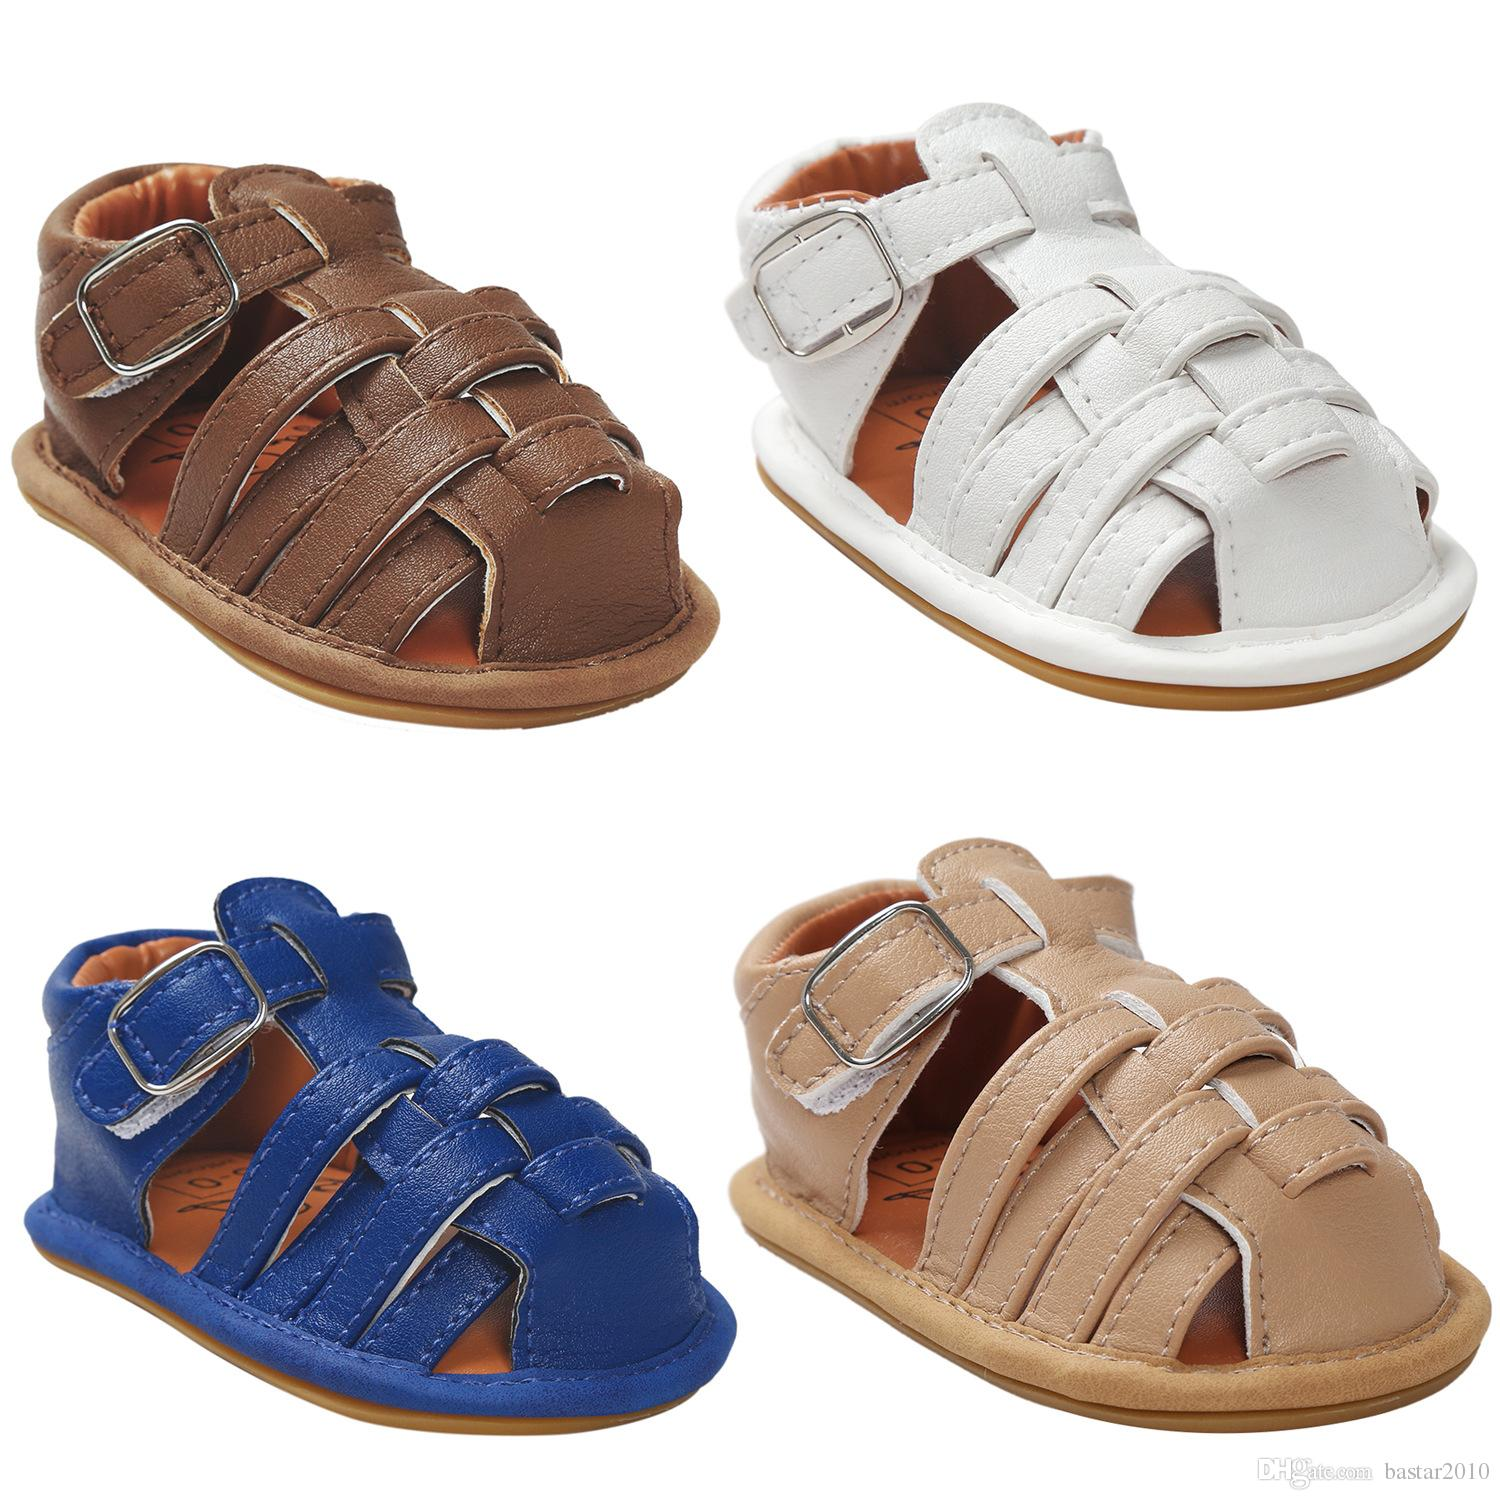 2018 2017 New Baby Boy Sandal Shoes 0 24 Months Baby Pu Soft Summer